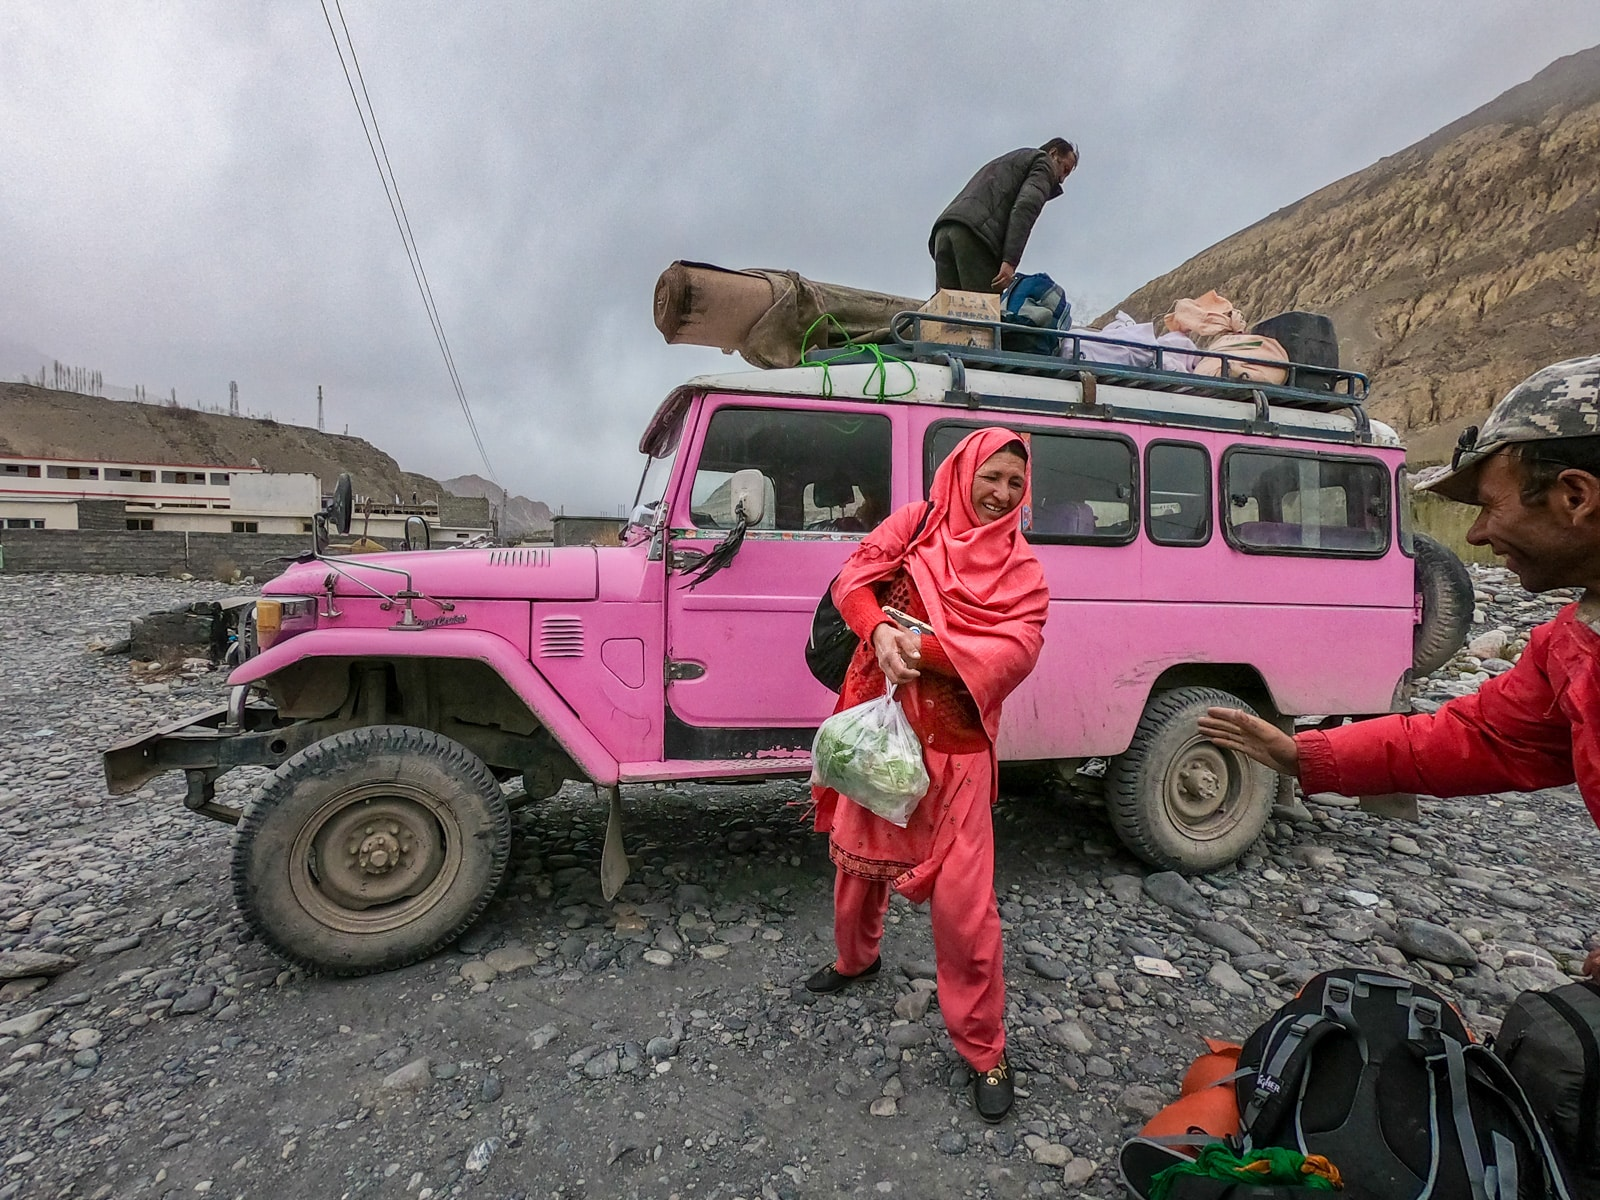 Hot pink public jeep to Chapursan Valley in Gilgit Baltistan, Pakistan